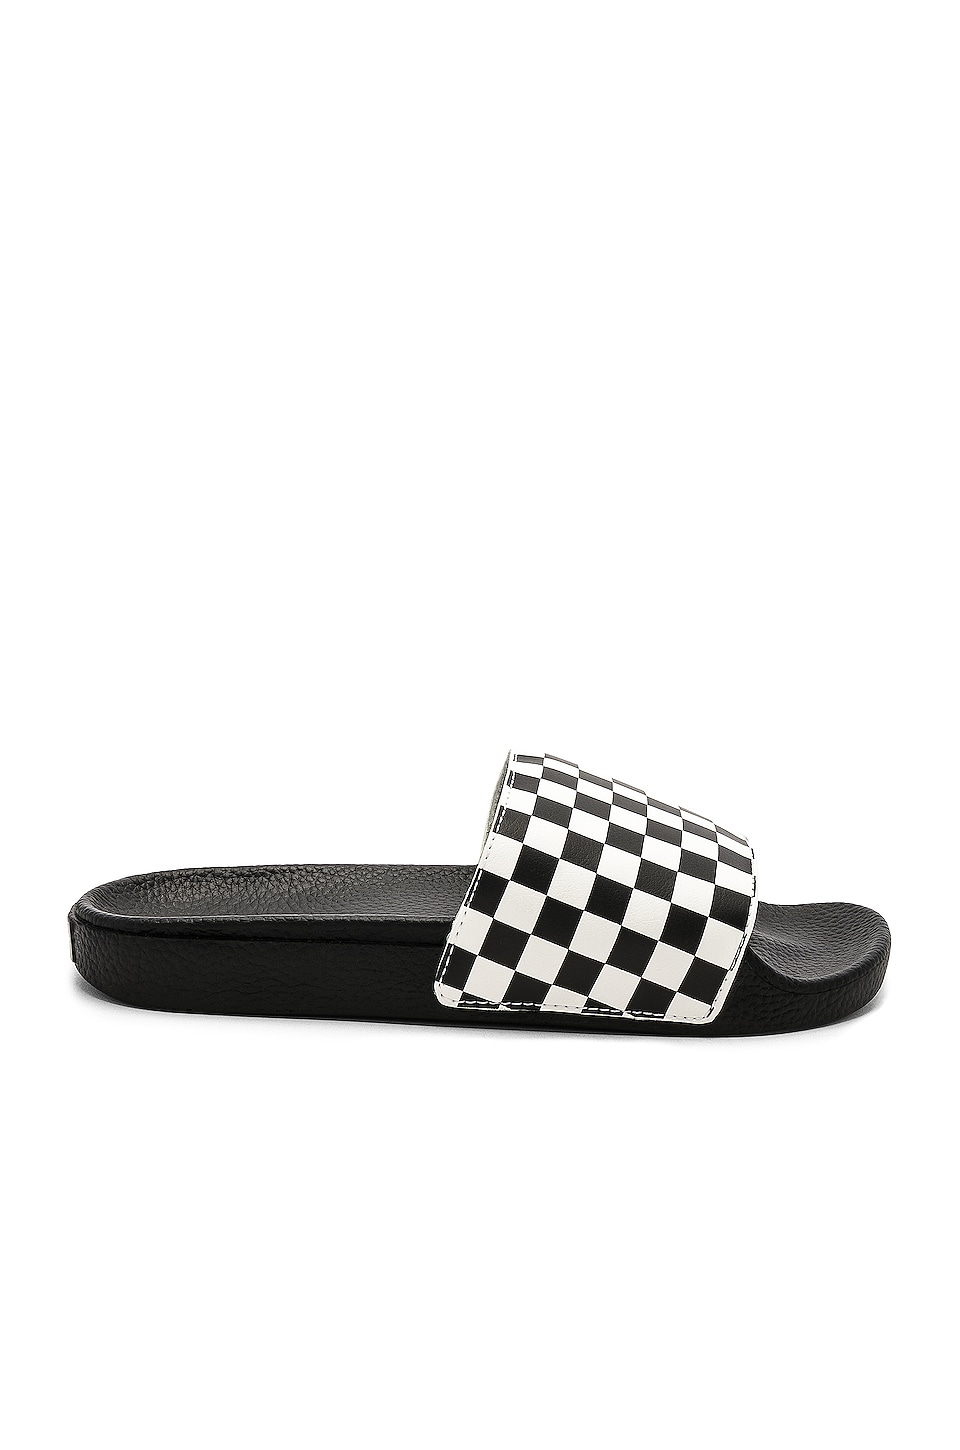 Vans Slide On in Checkerboard White